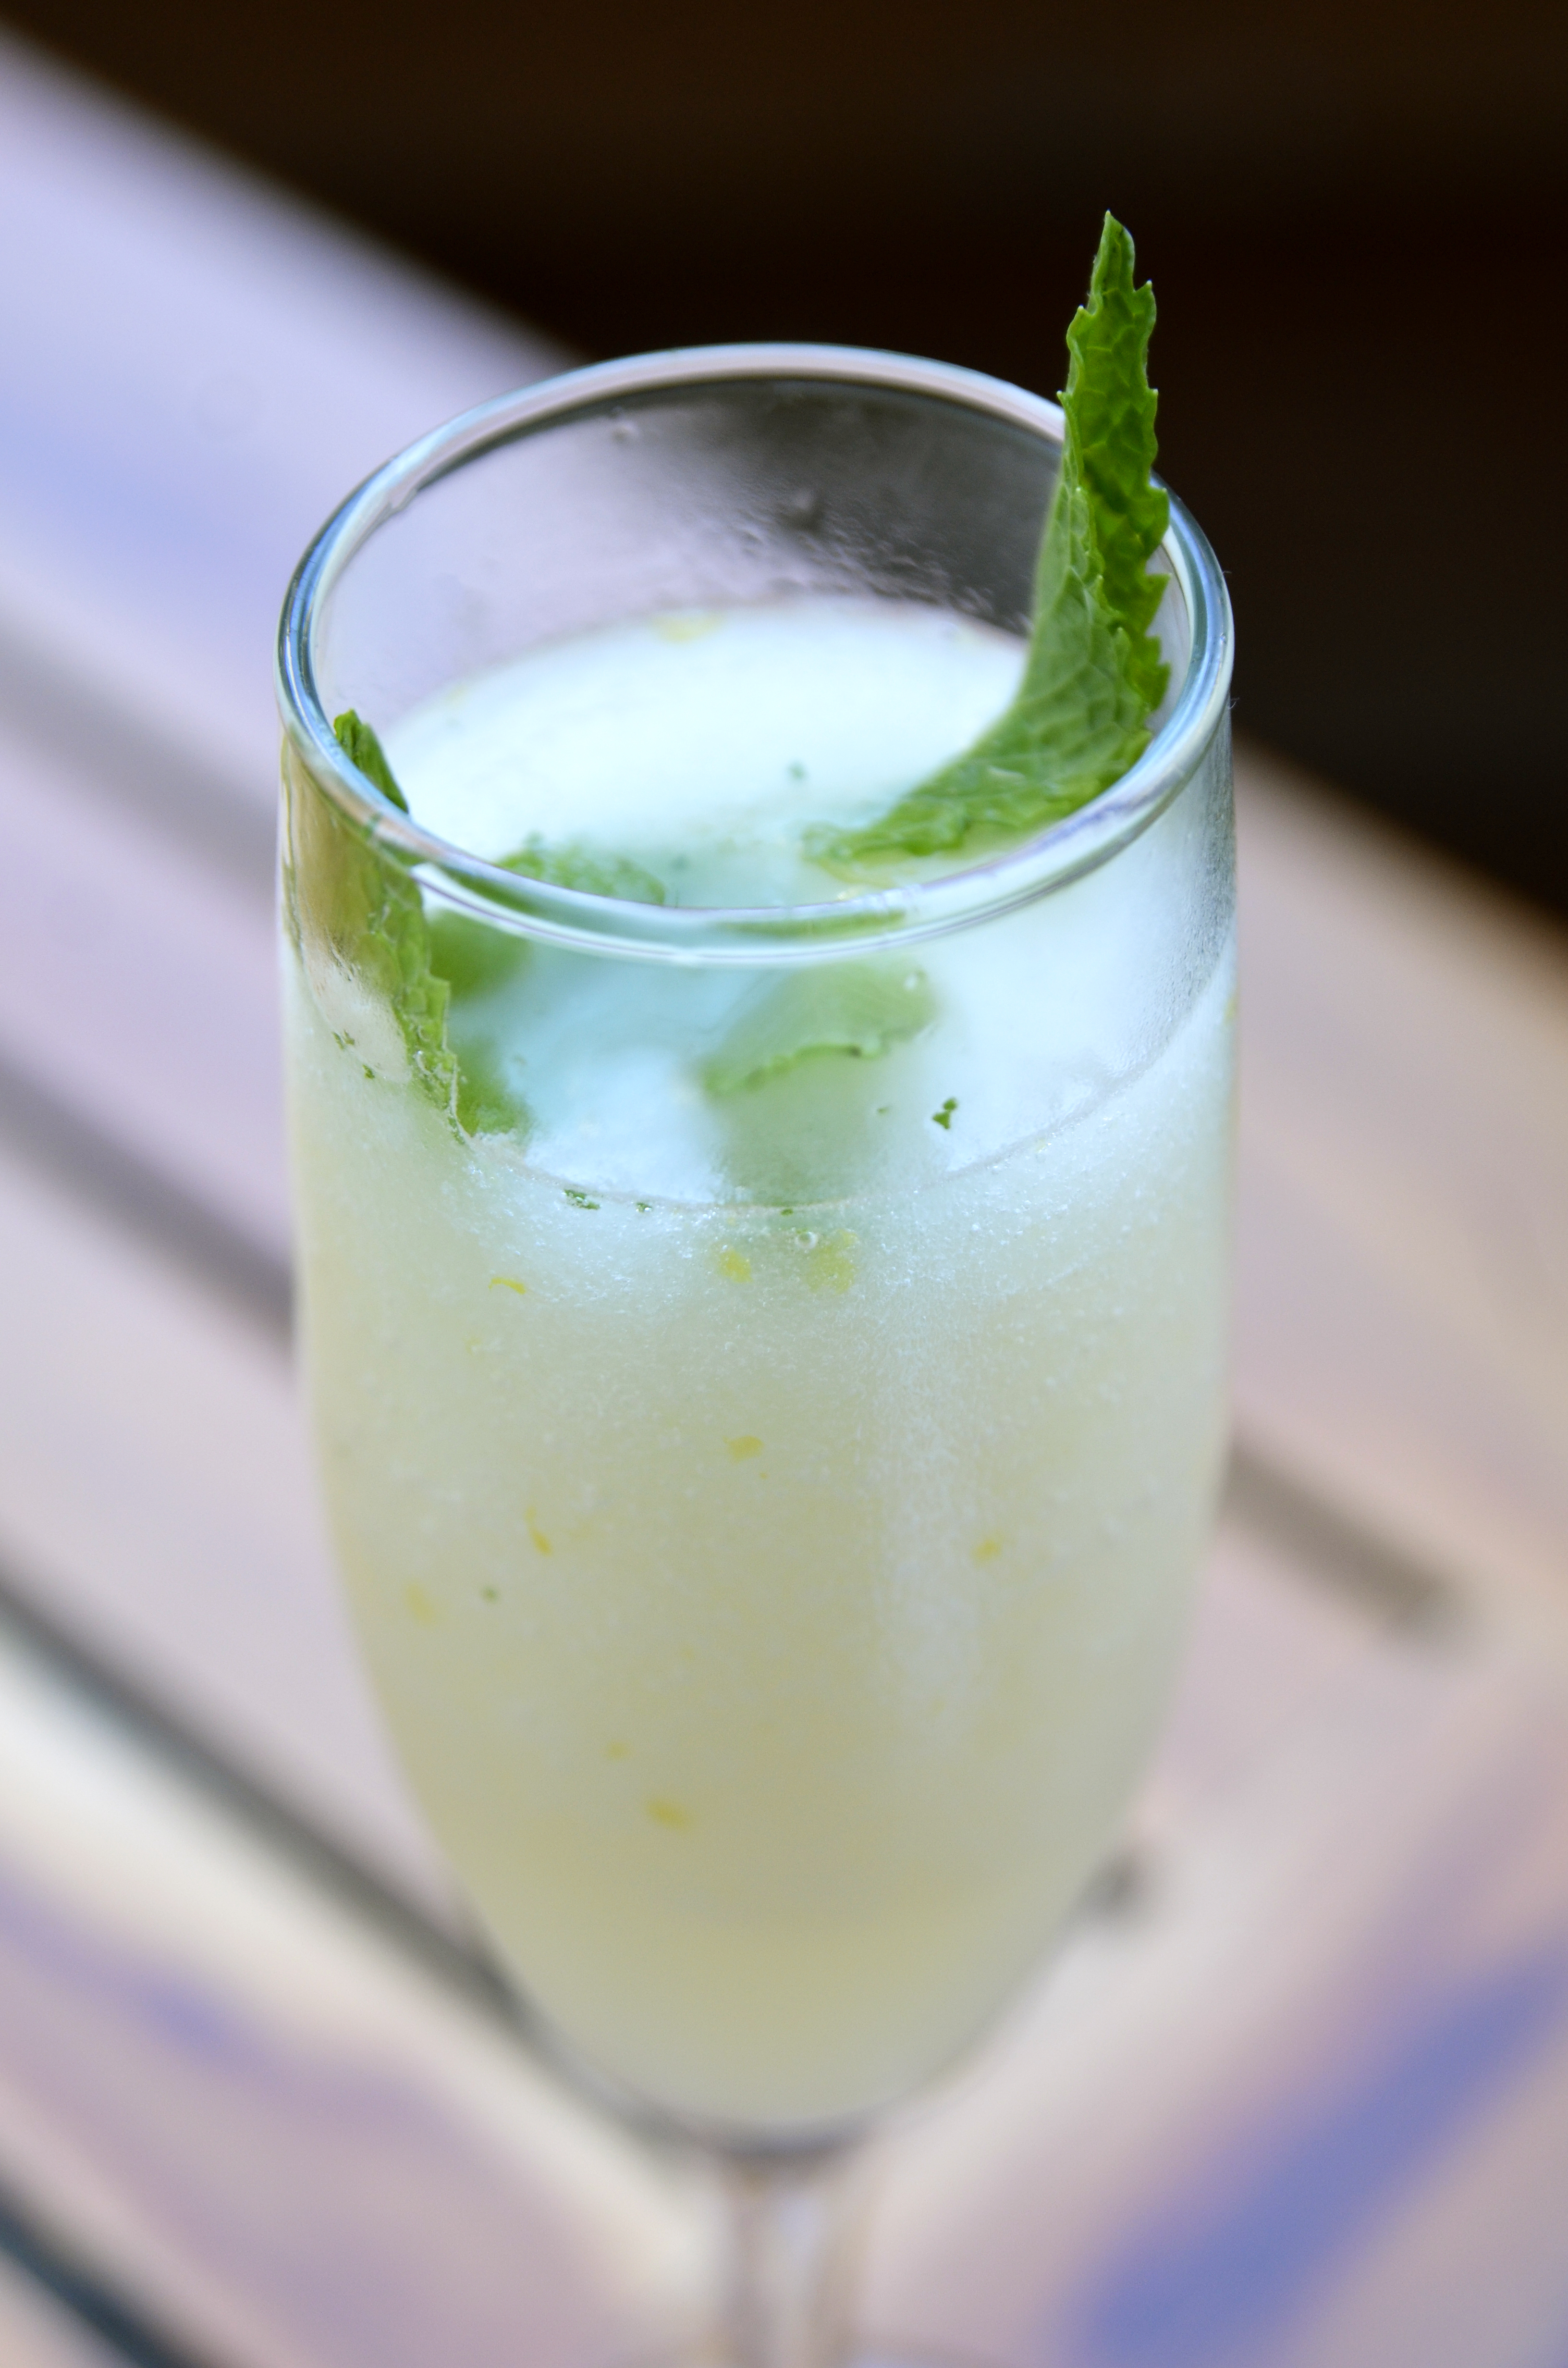 Cocktail with mint in the glass